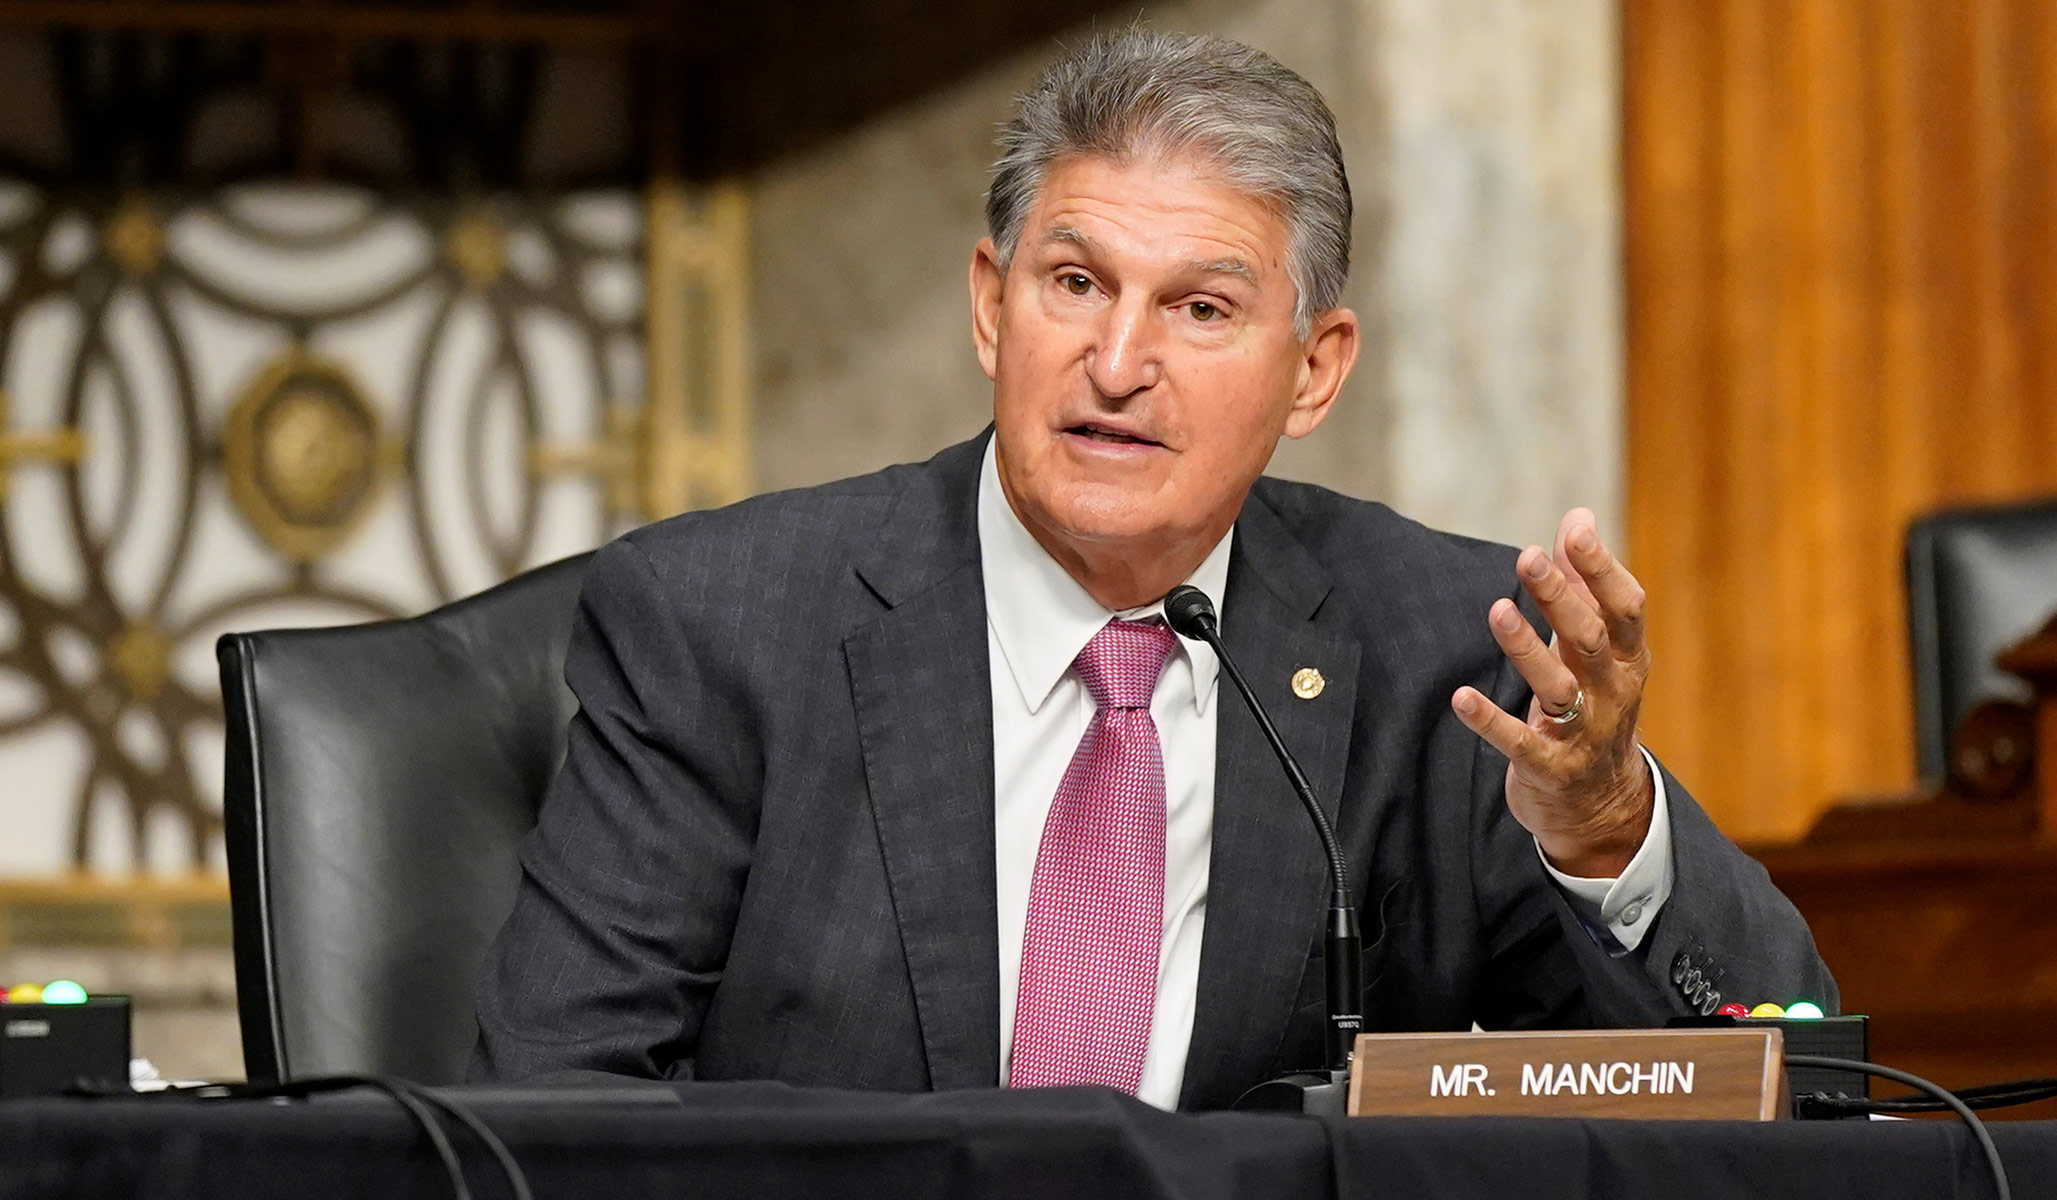 Senator Manchin: 'I Cannot — and Will Not — Support Trillions in Spending'